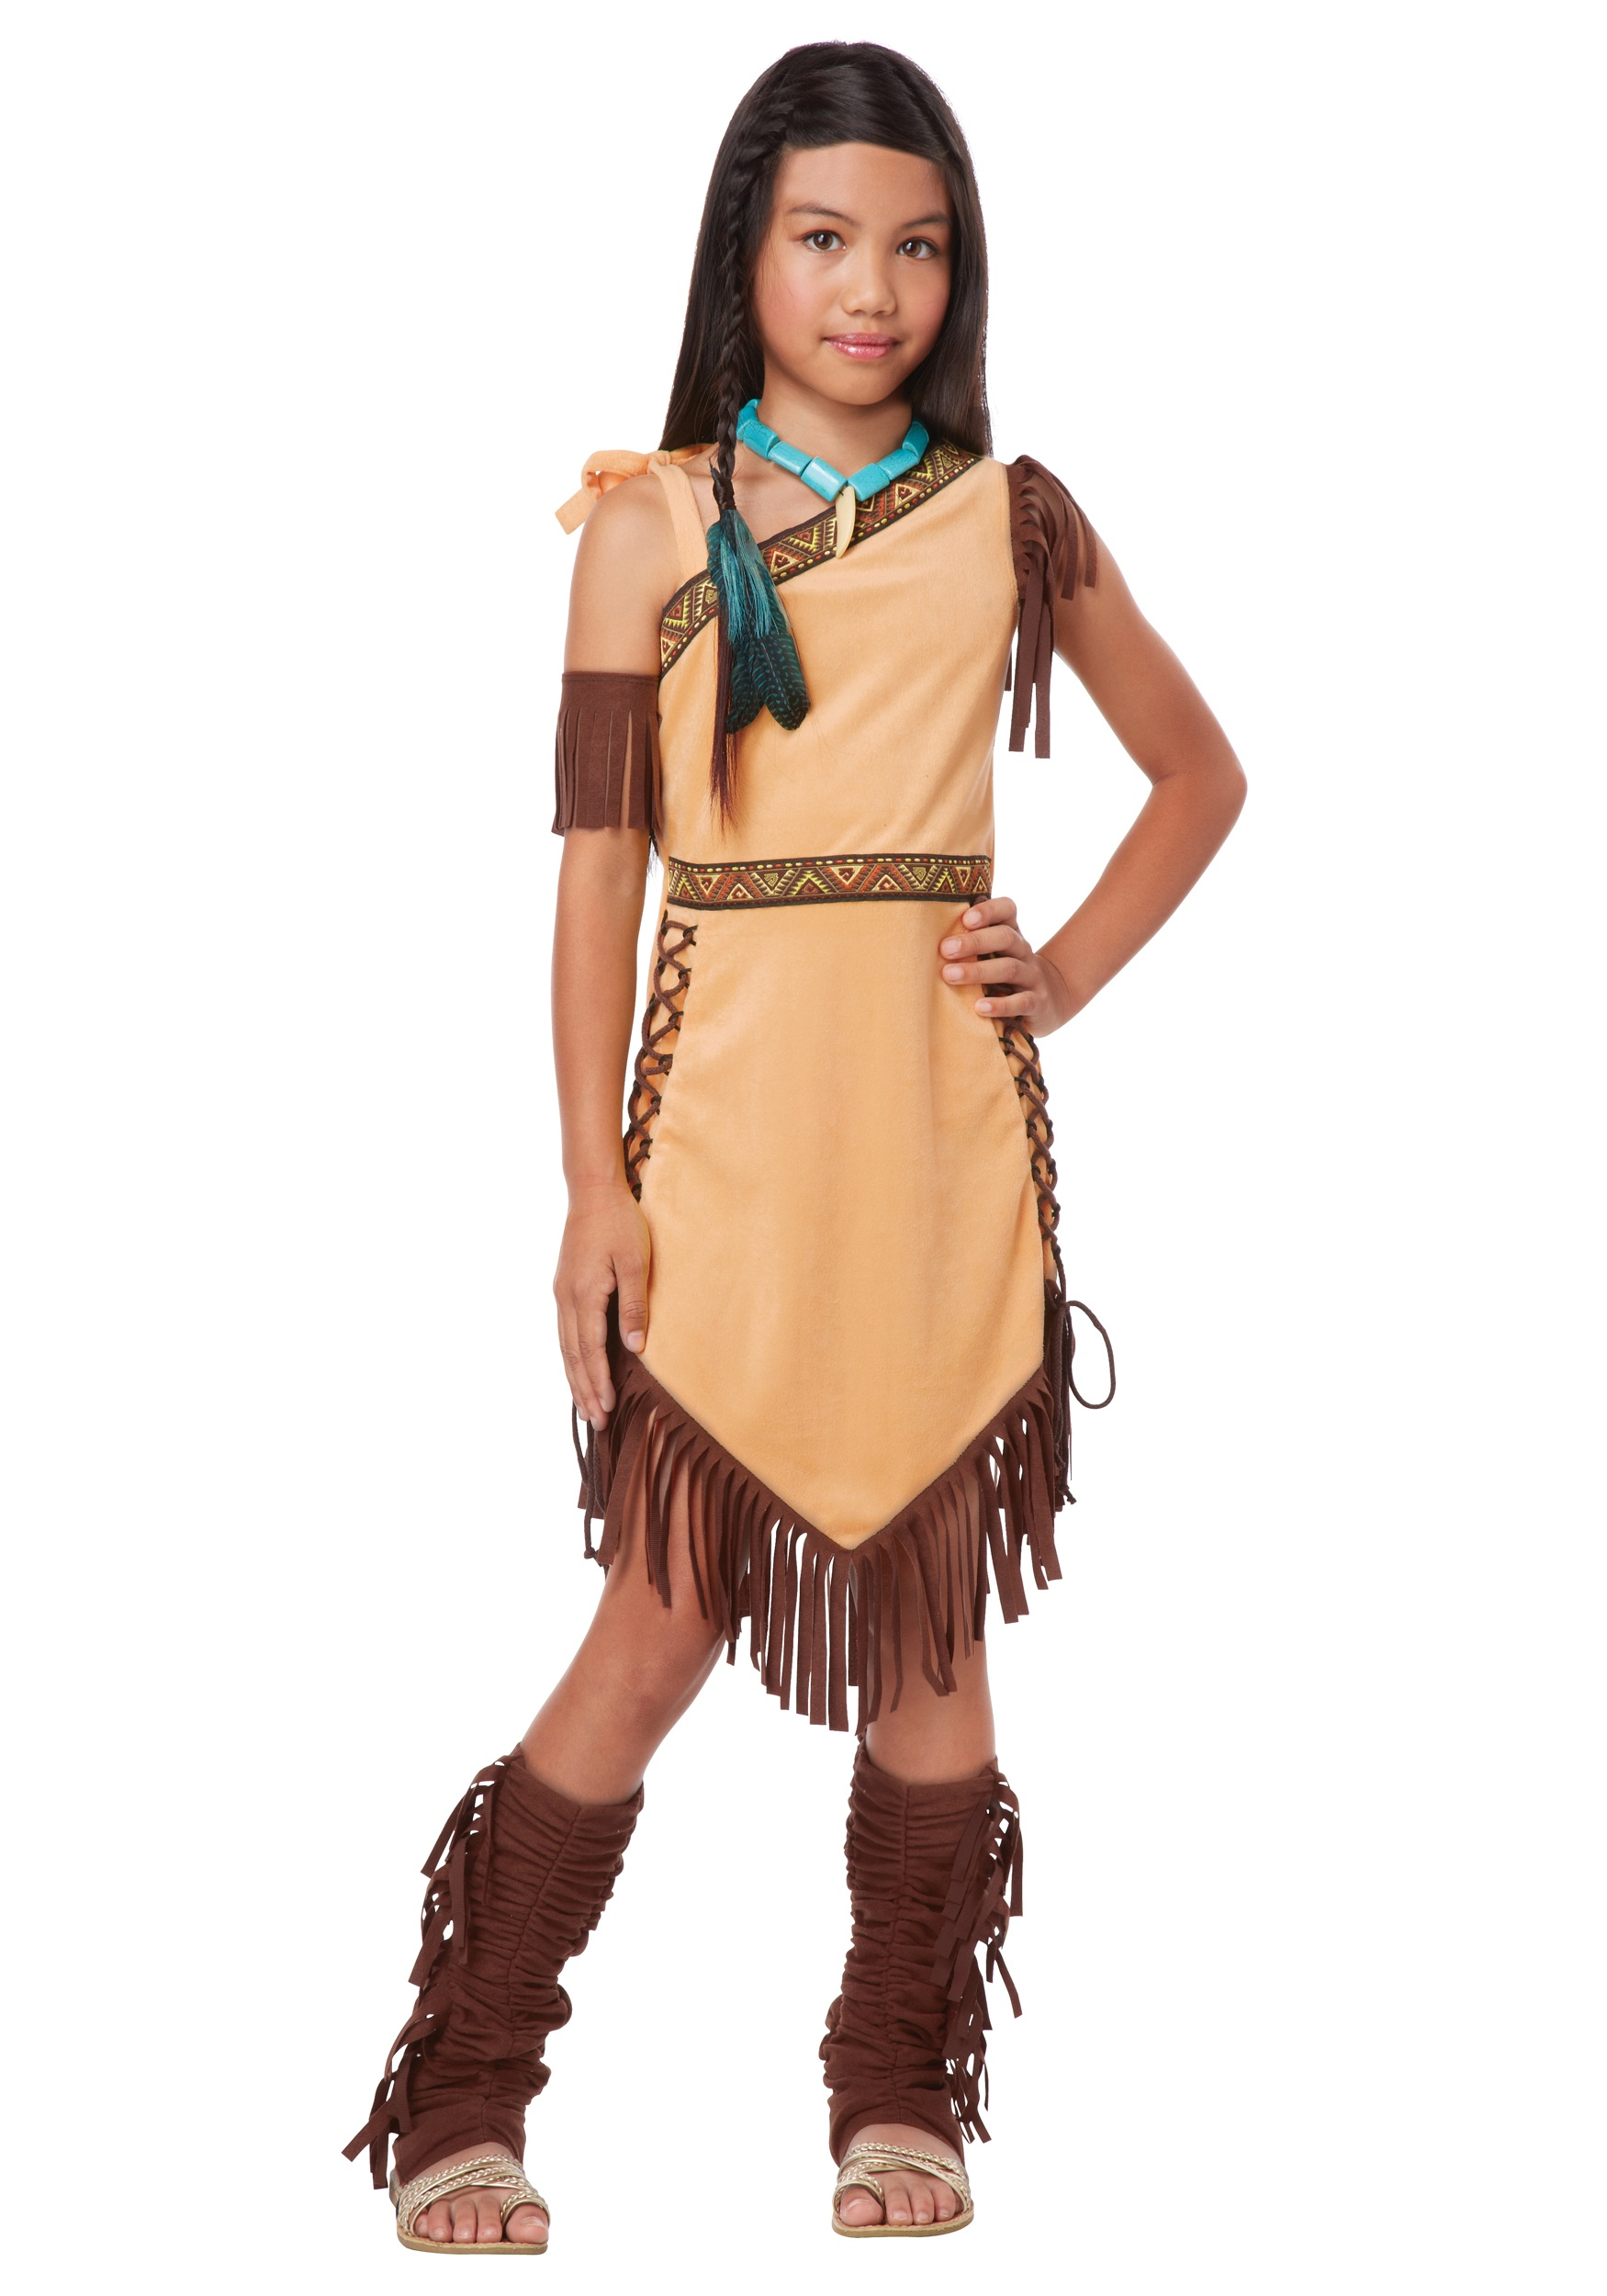 Native American Princess Girl Costume EBay